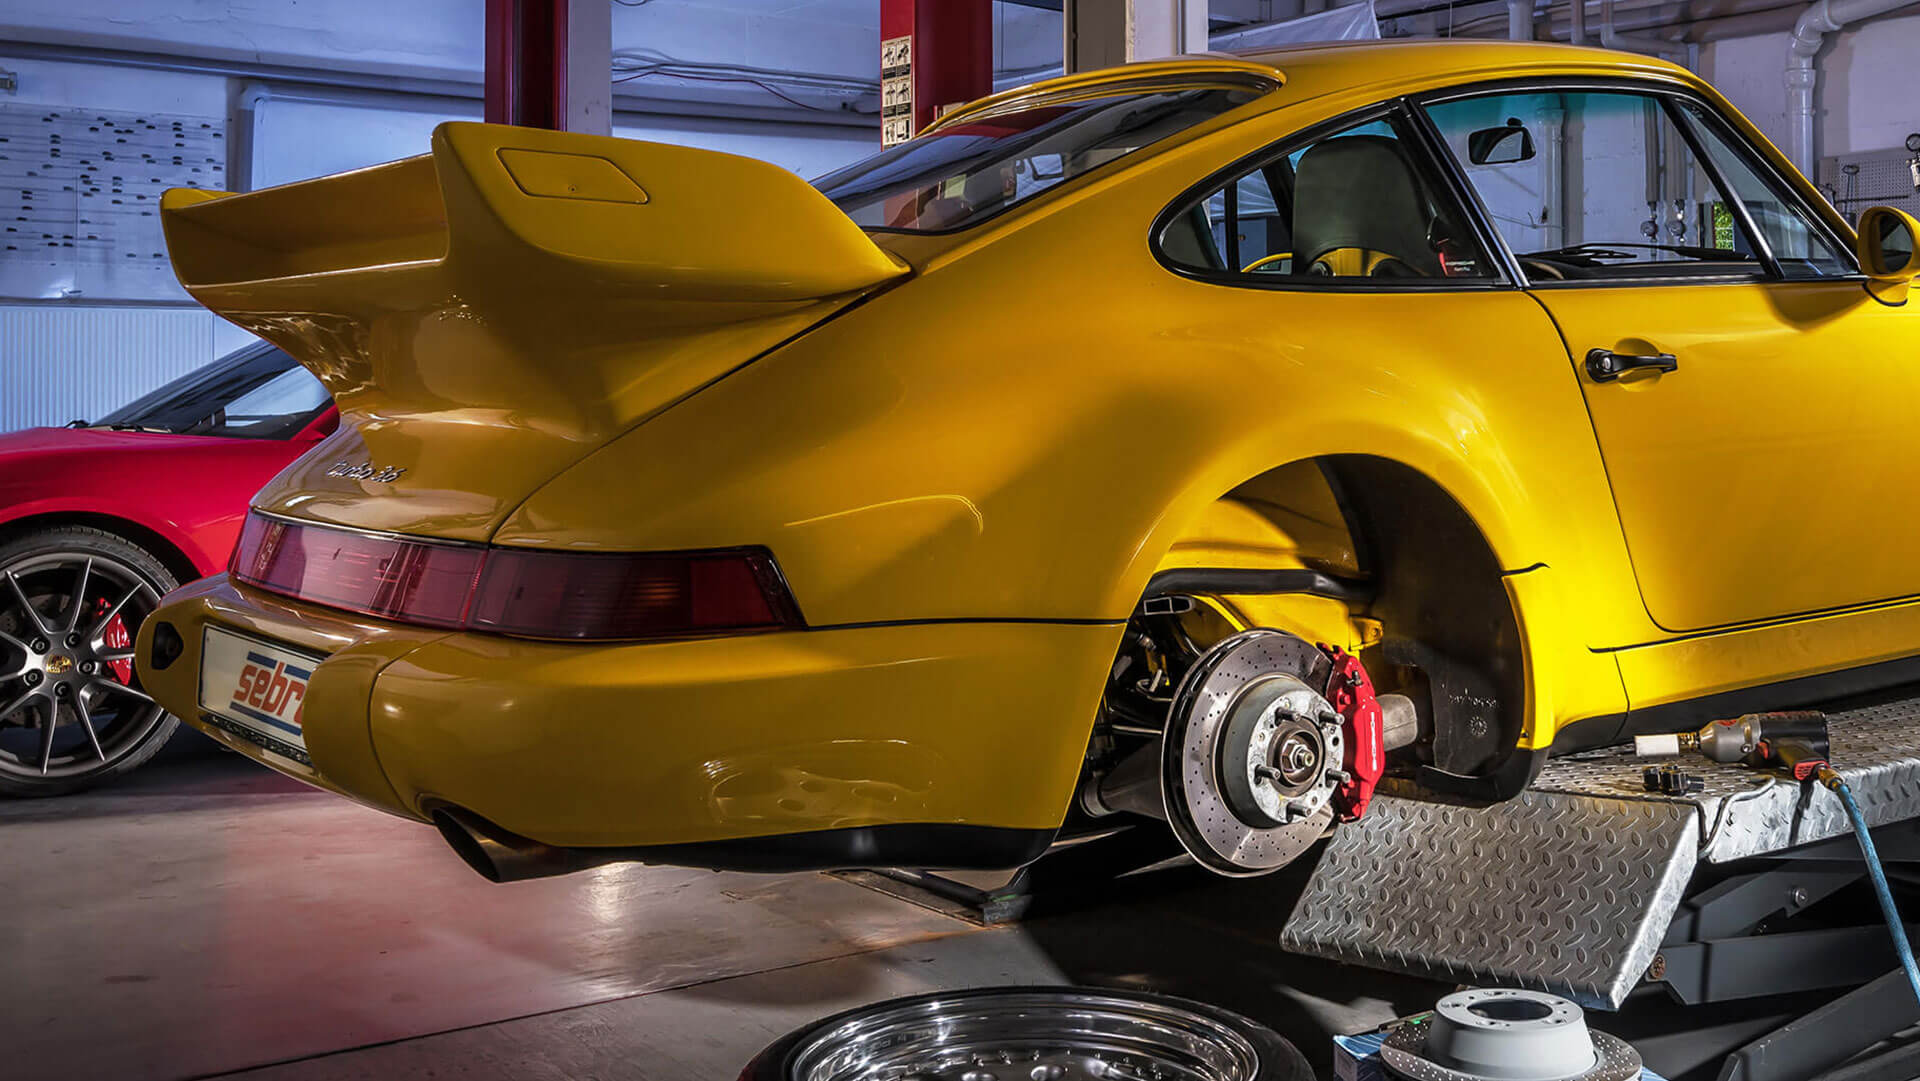 Brake discs as well as engine, drive and chassis components for Porsche workshops